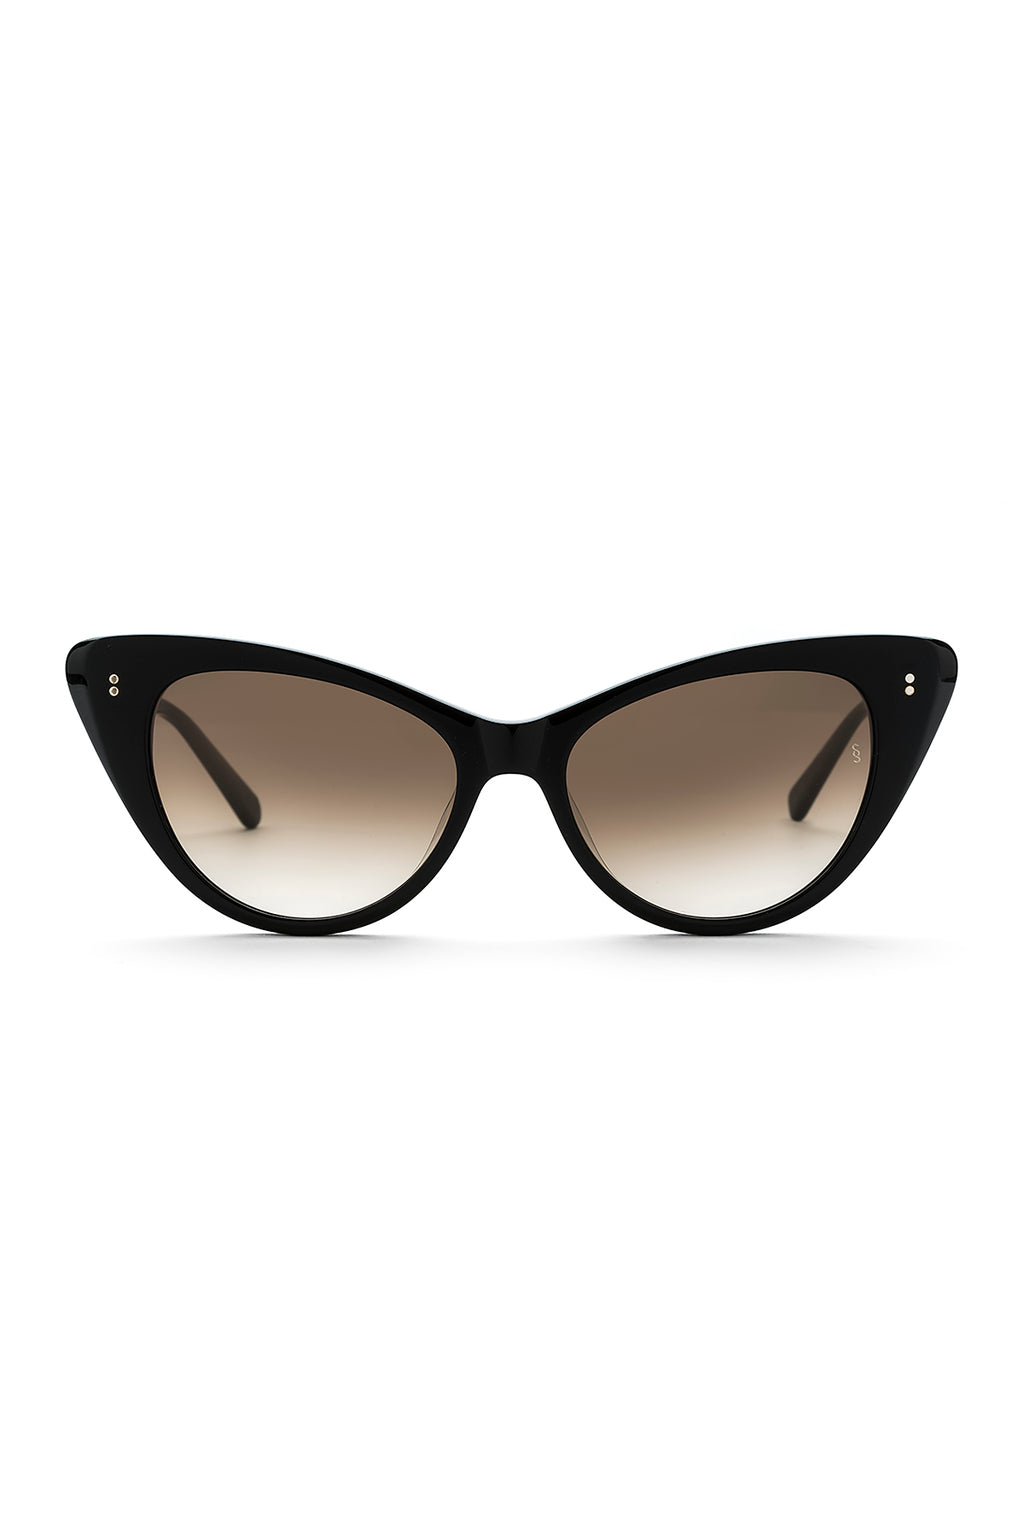 PIPER Sunglasses, Black